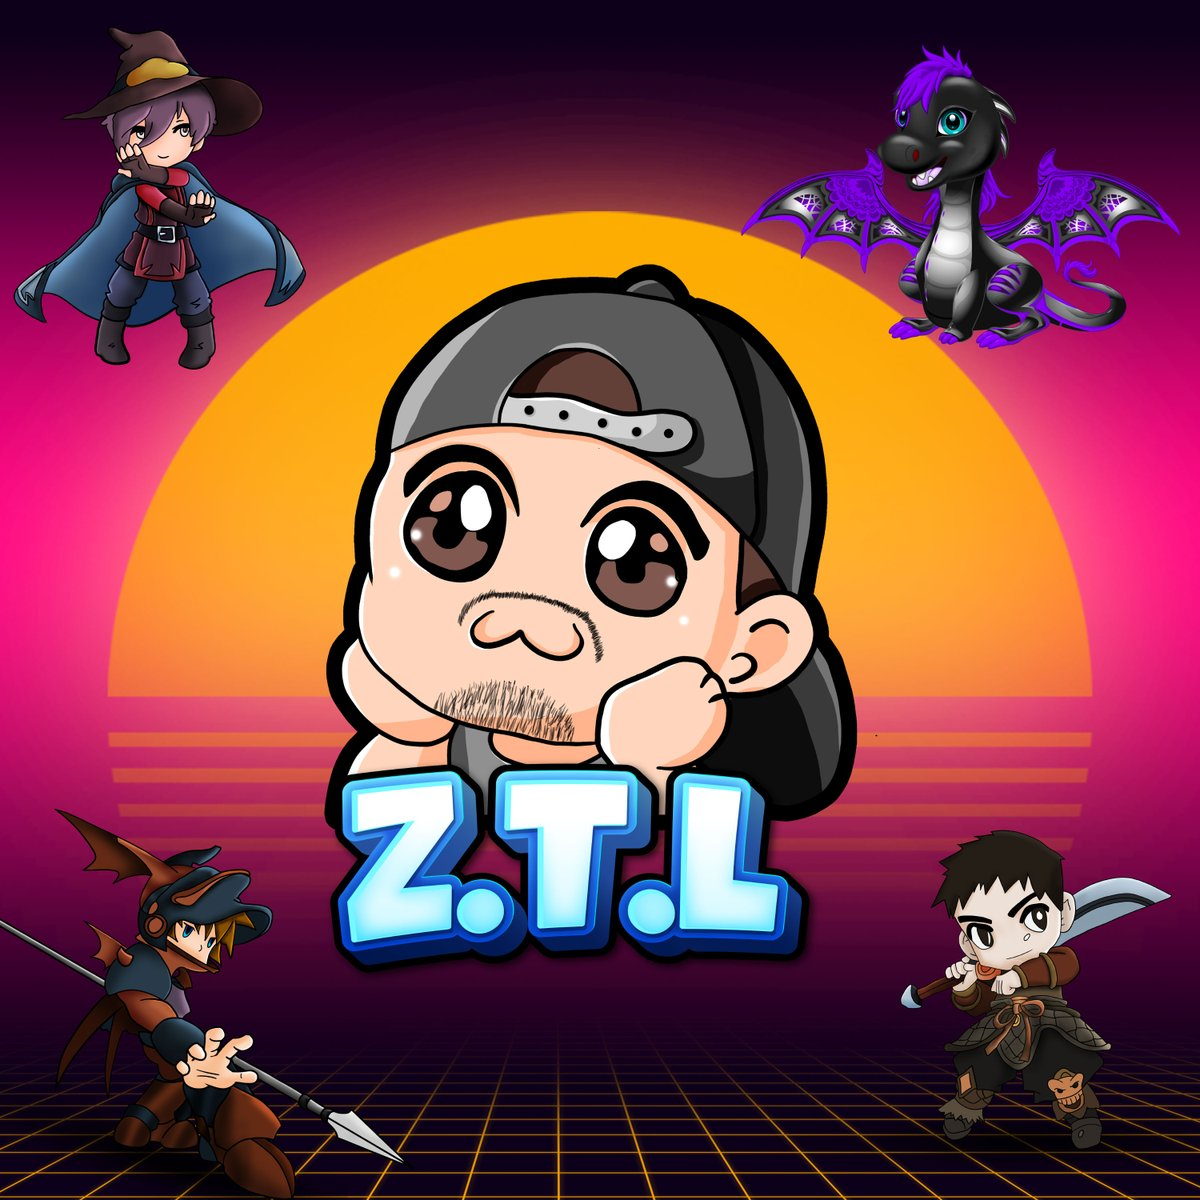 A HUGE thanks to @KaylaGraphics for the AWESOME profile lolg and banner!!!!! If you need work, hit her up!!!! #twitch #GFXDesigner